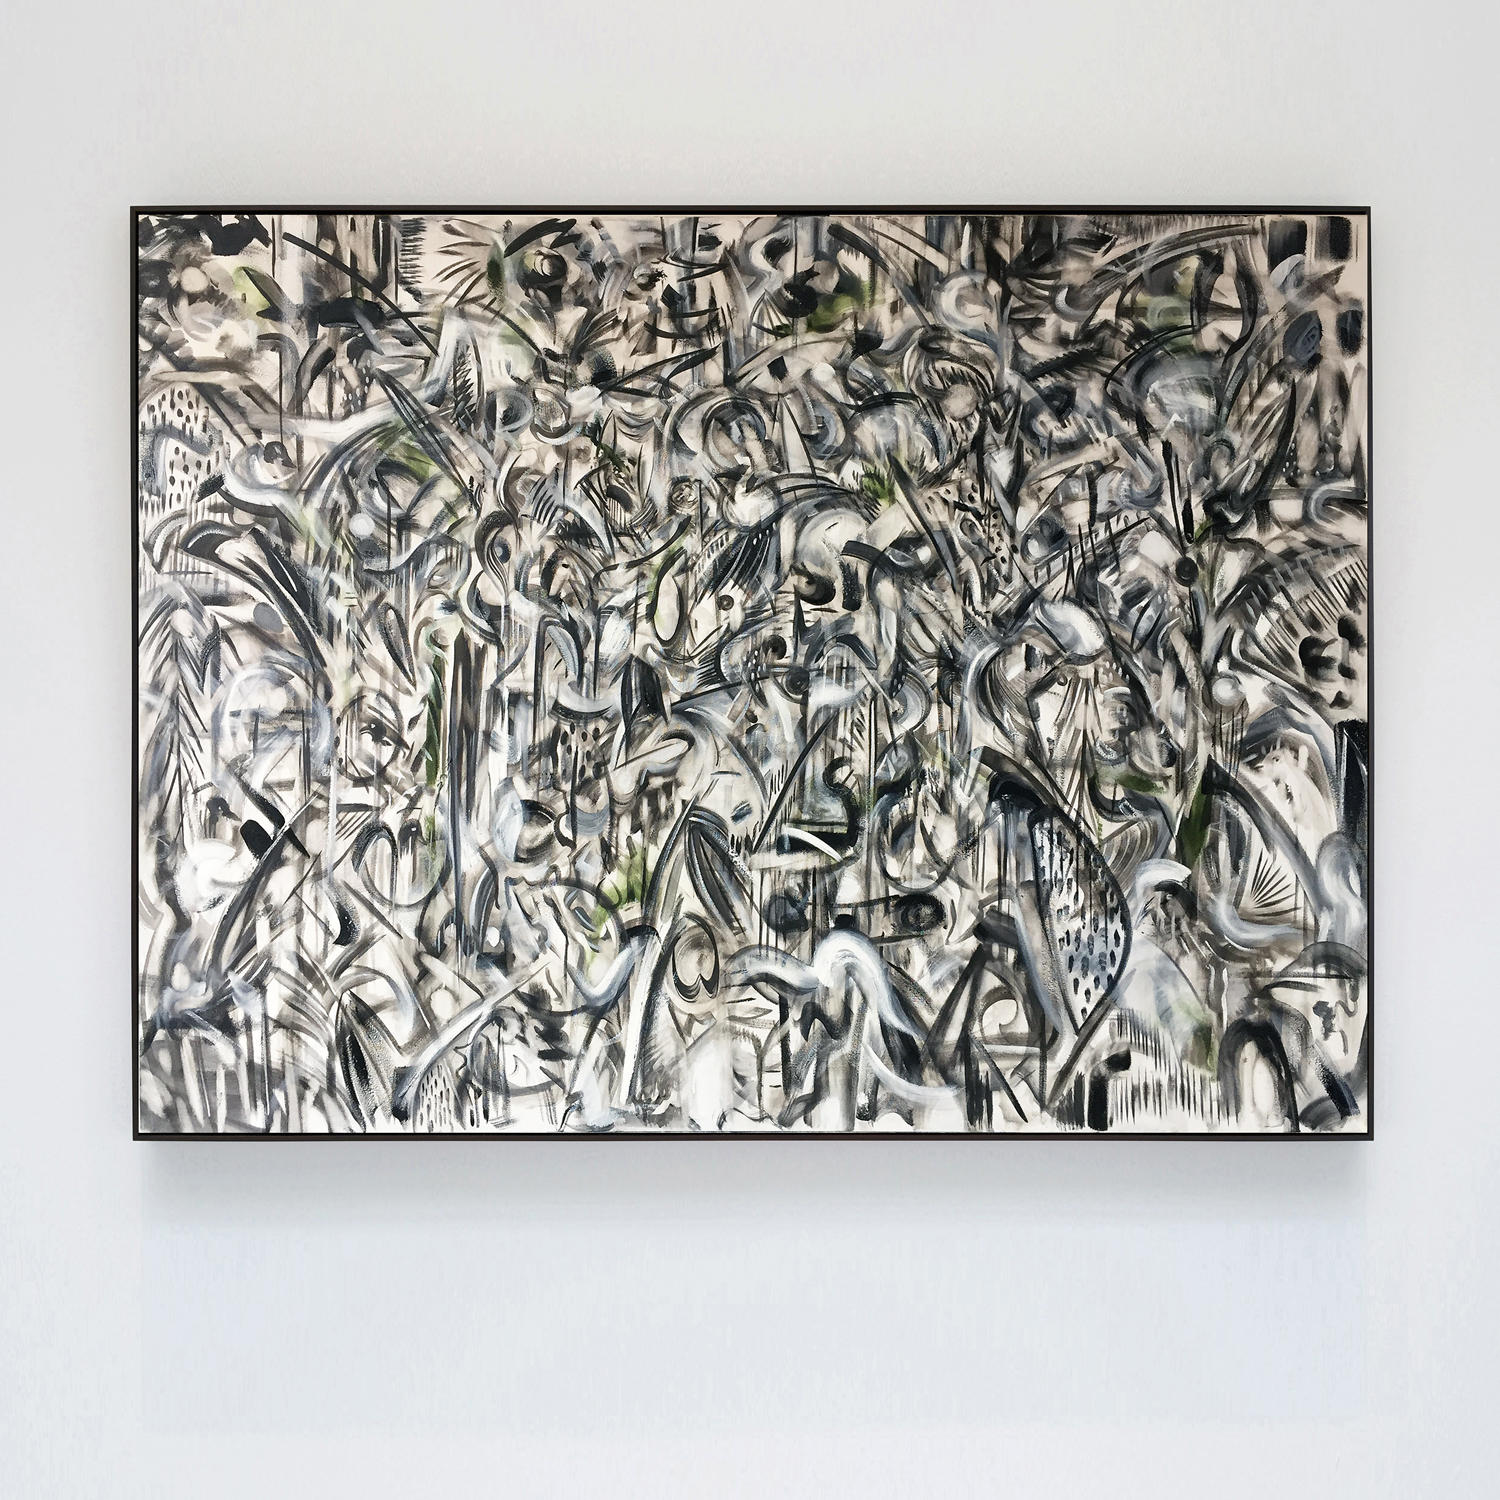 his key monochrome, 2018, oil, oil stick on canvas, ivy, tulip wood moulding, dark oak finish, 90 x 120 x 4cm